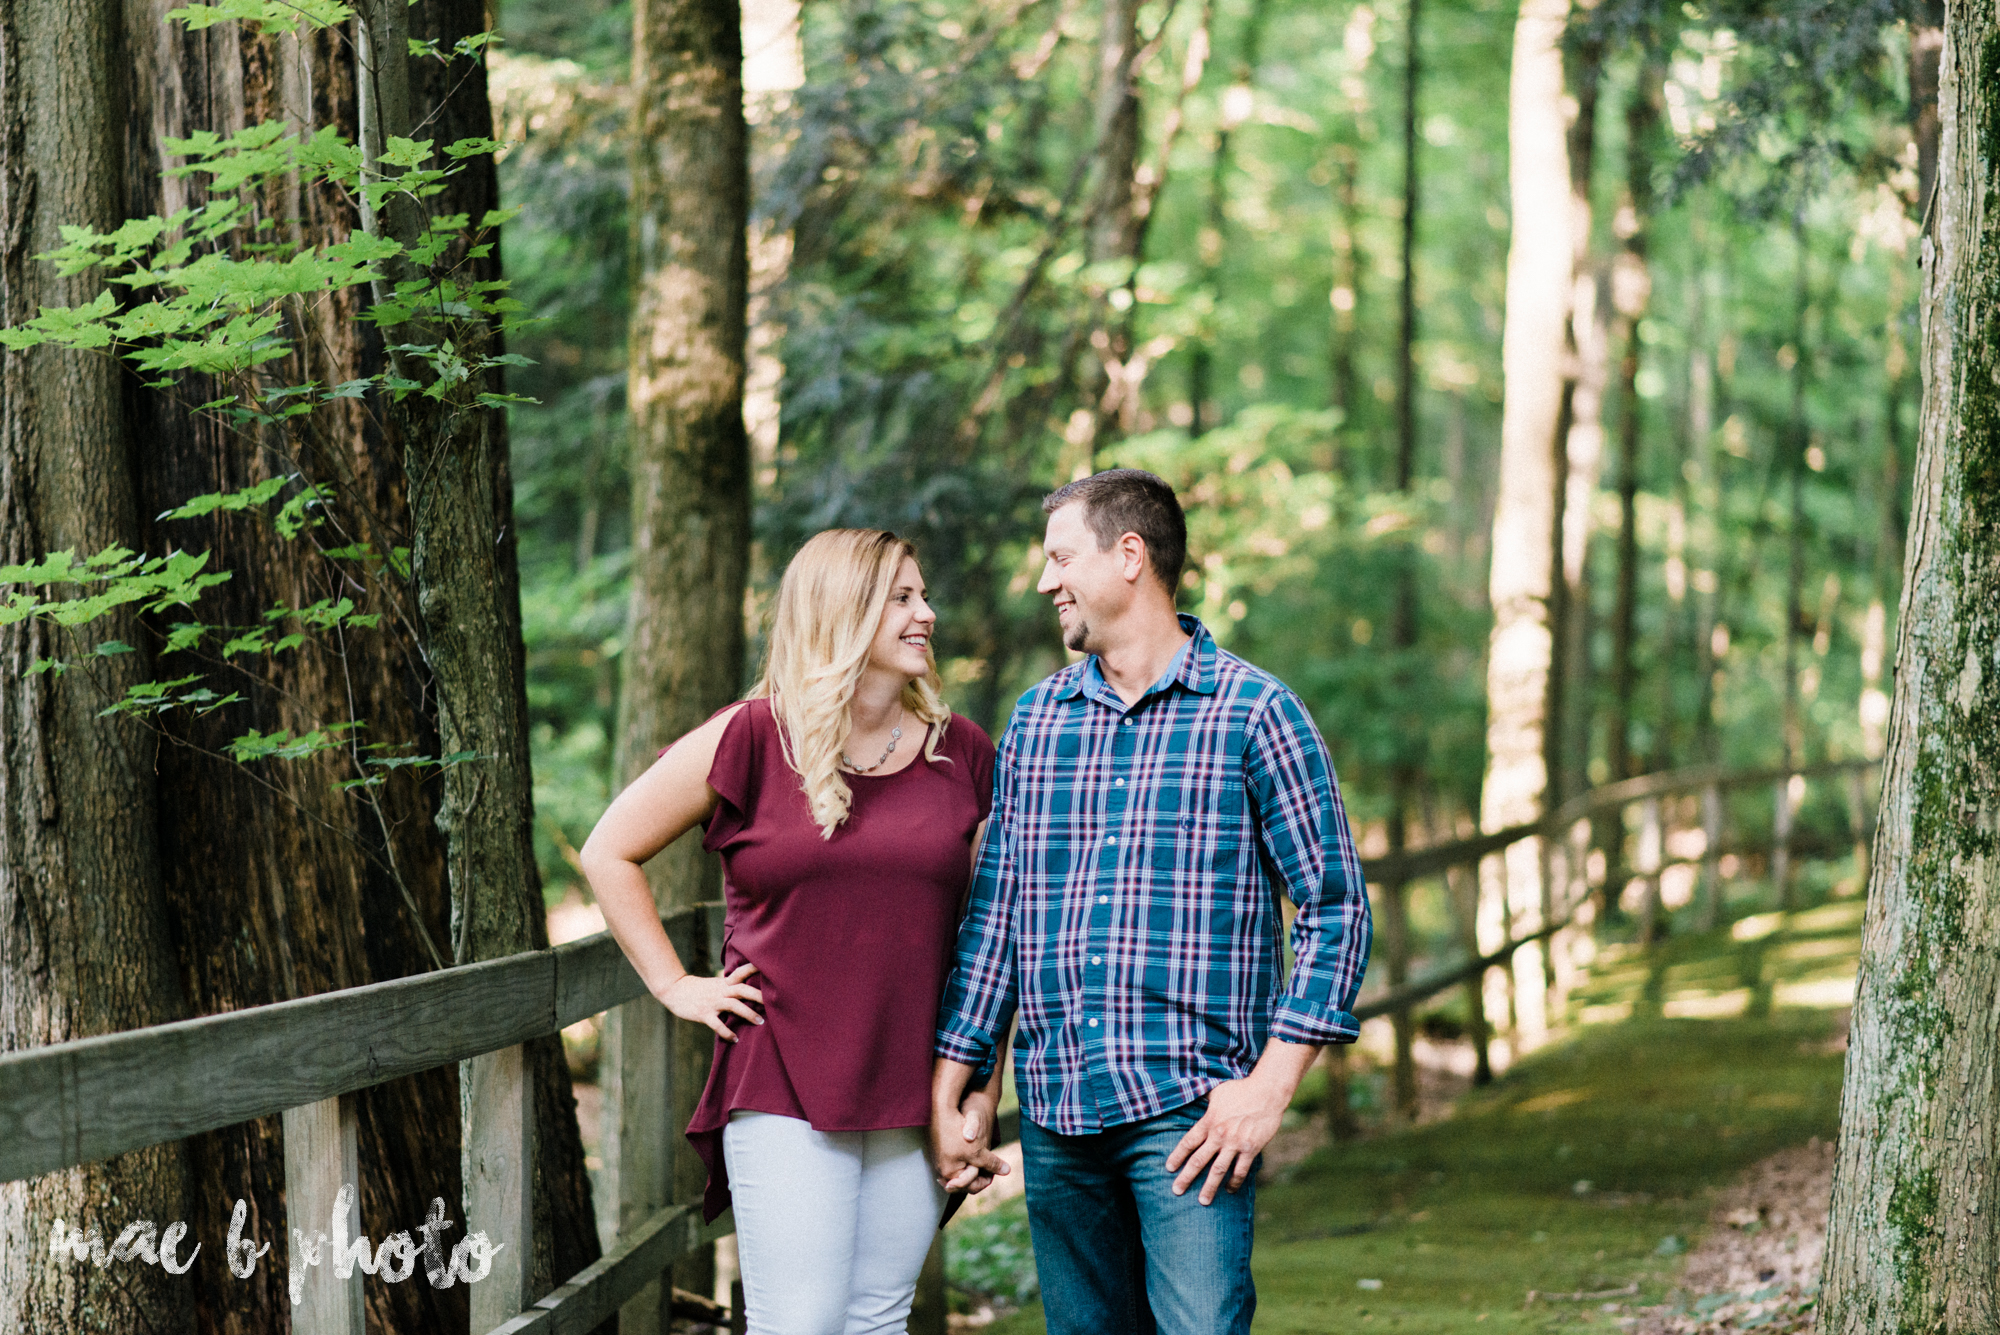 becca and rich's woodsy summer engagement session at ford nature center in mill creek park in youngstown ohio photographed by cleveland wedding photographer mae b photo-1.jpg